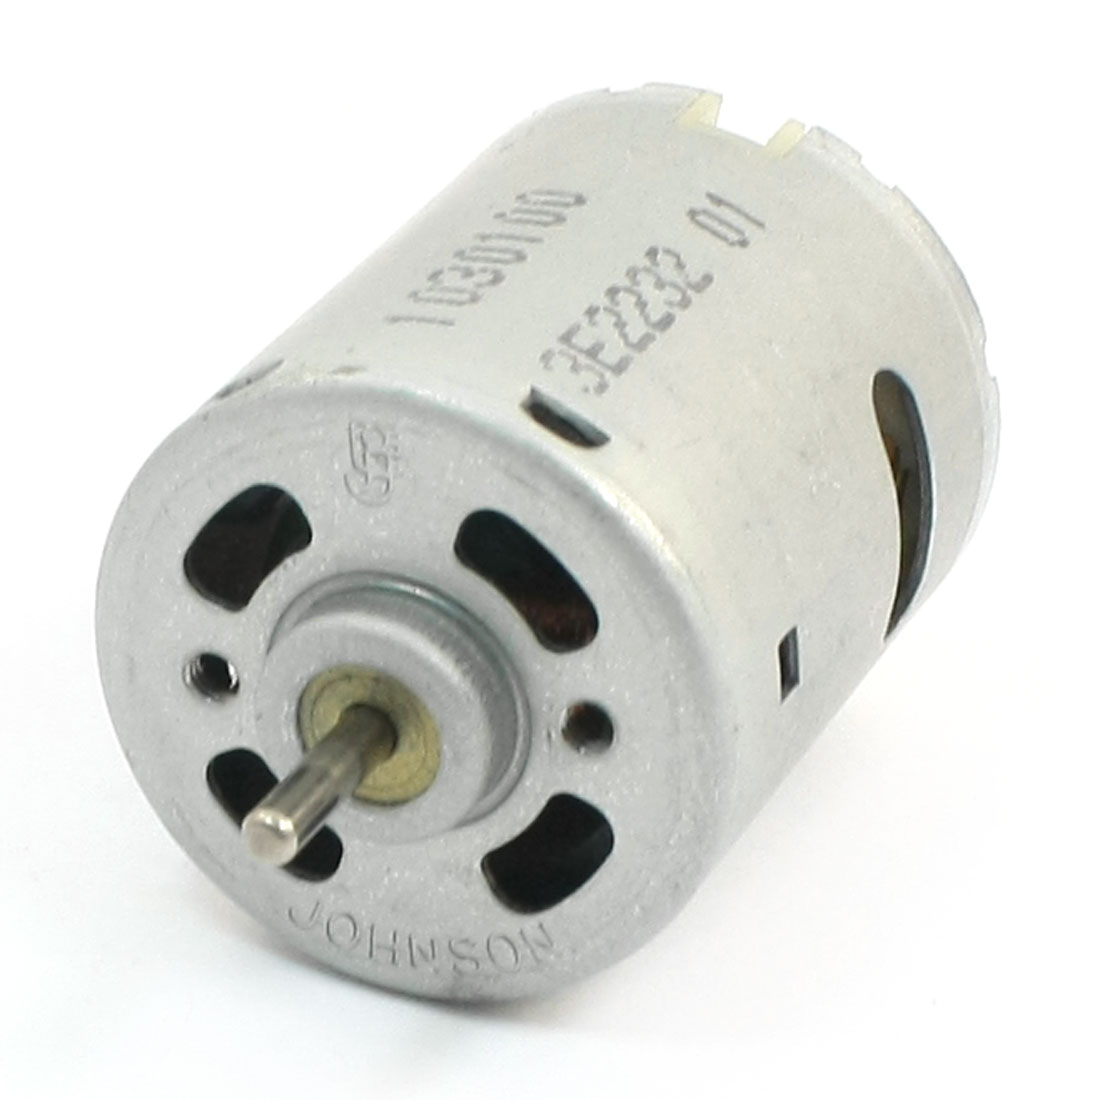 36V 5400RPM 38mm x 28mm Body 360 Micro DC Motor for Pump